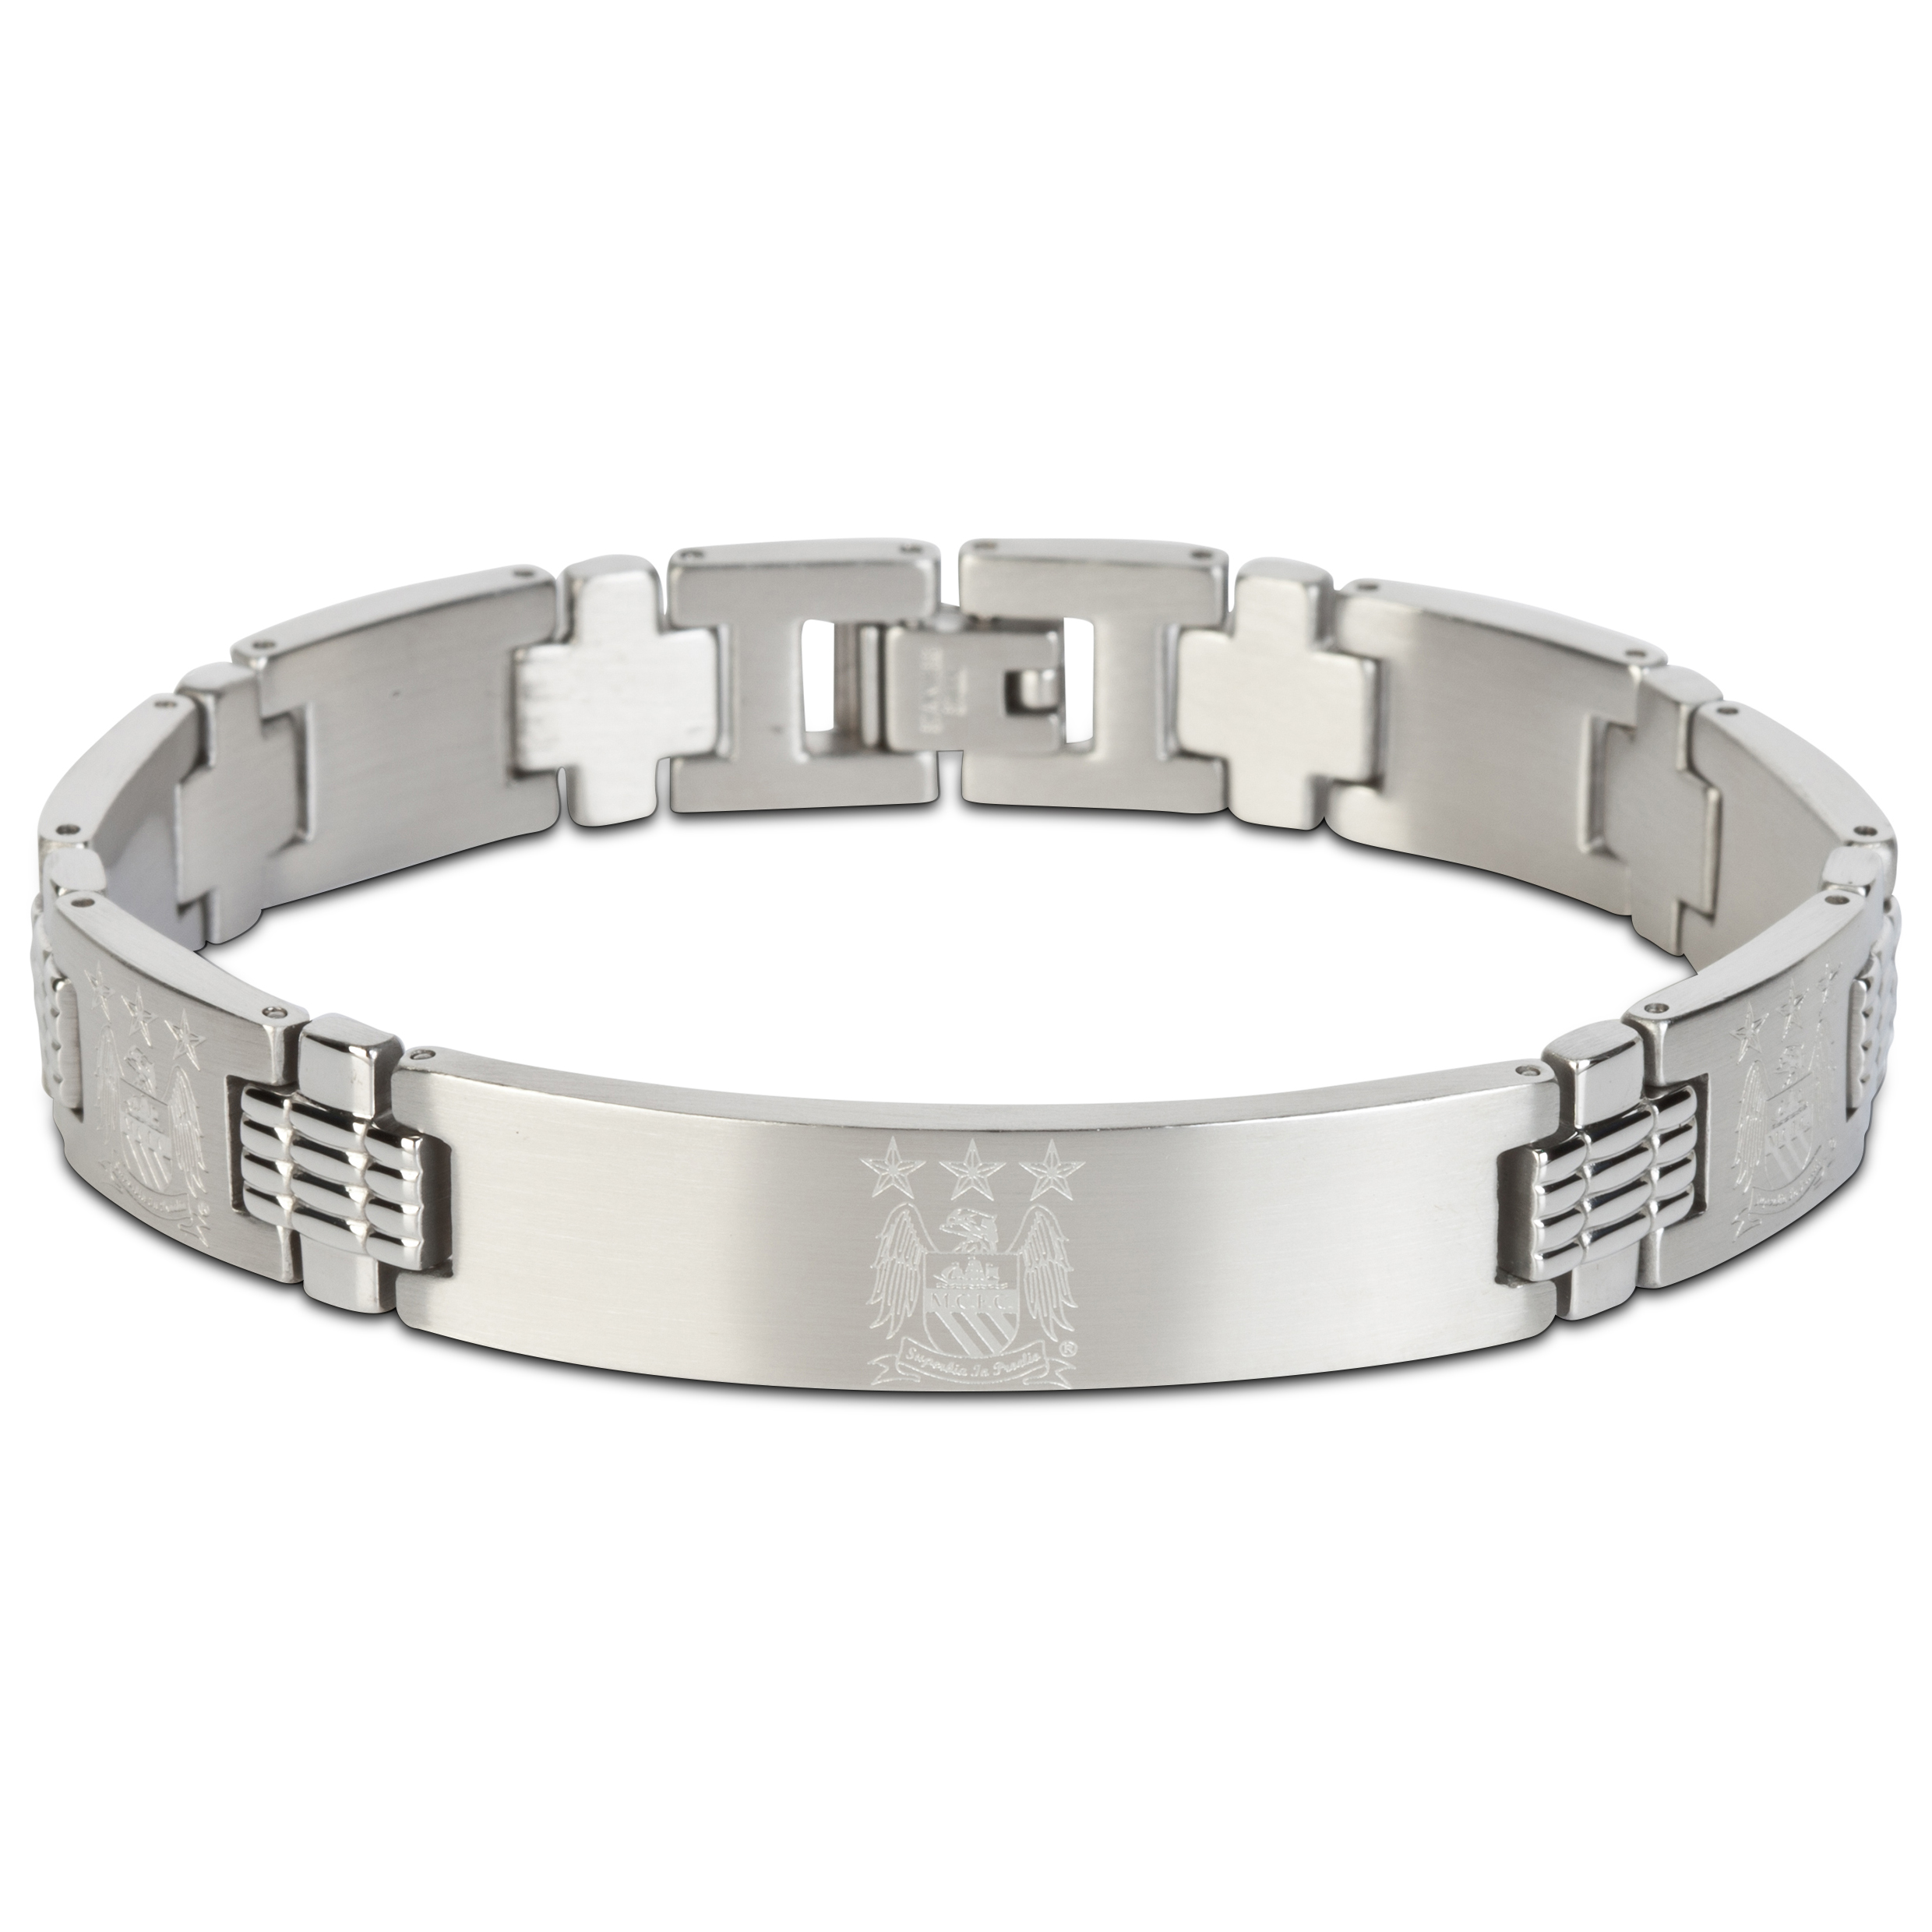 Manchester City Crest Bracelet with Links